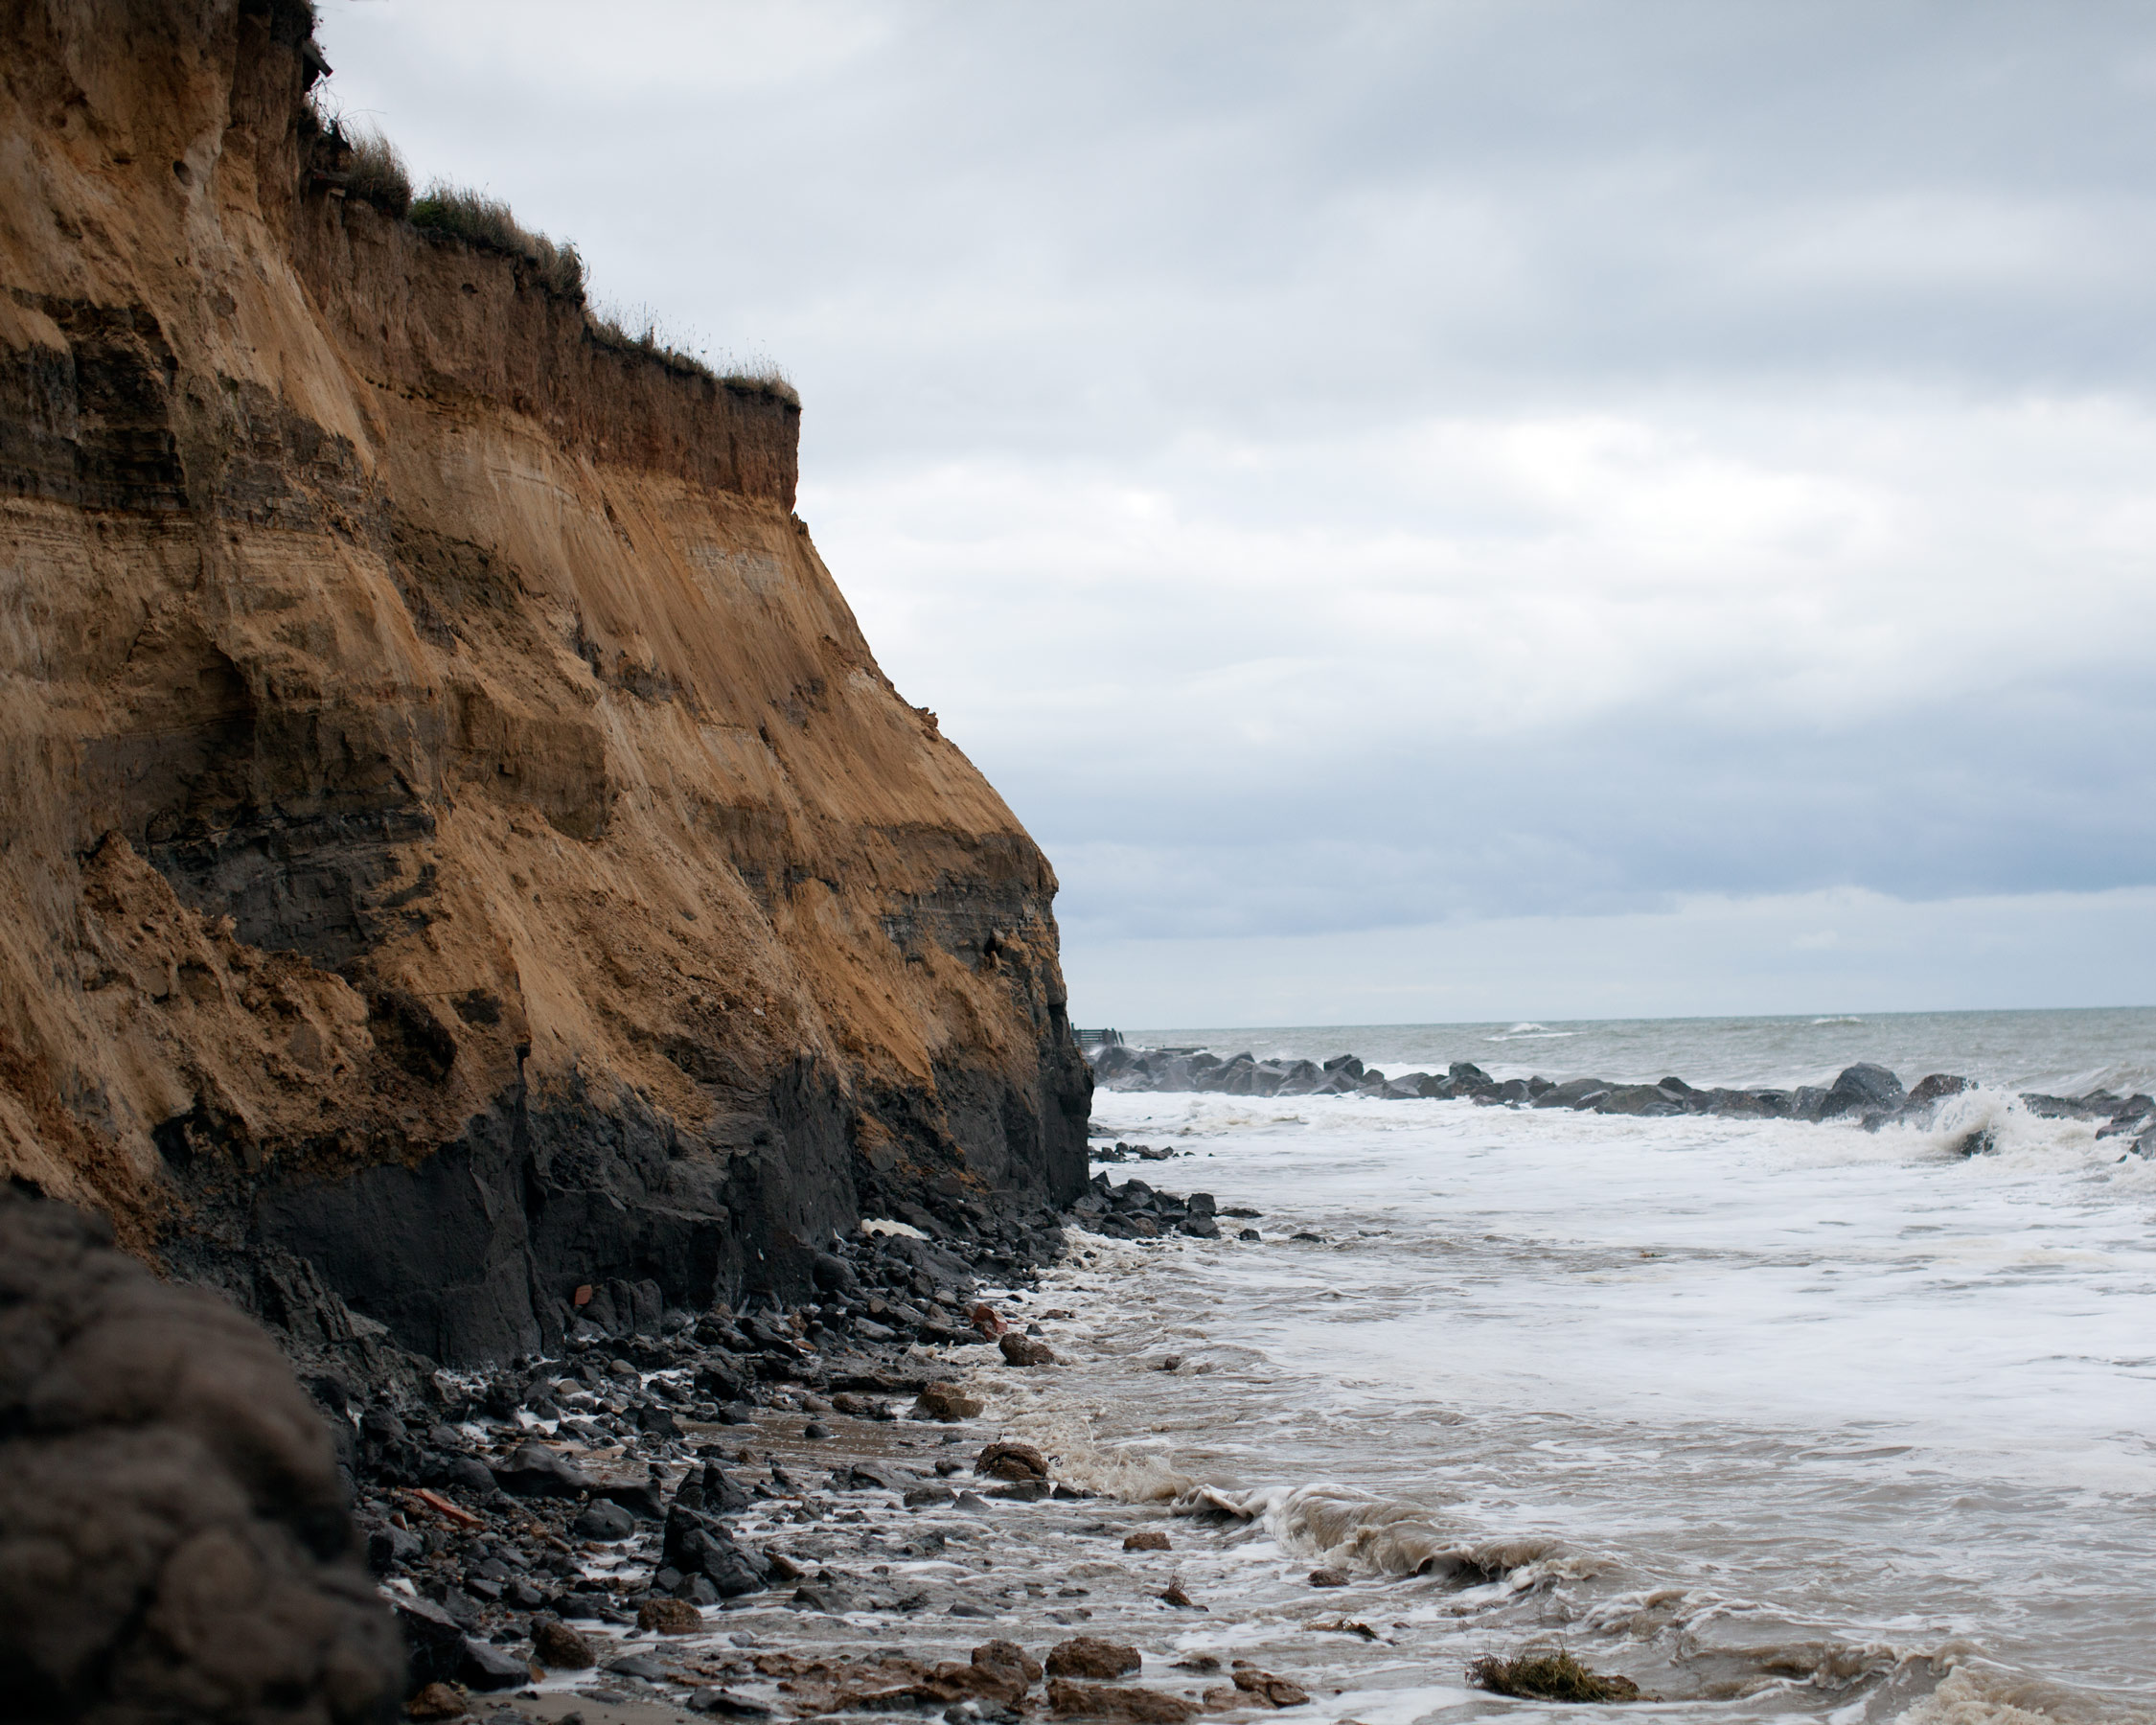 In 2007 4,000 tonnes of rocks were placed at the foot of the cliffs in Happisburgh. At a cost of £200,000 to North Norfolk District Council and £50,000 to villagers but these defences have now been washed away, leading to huge erosion.